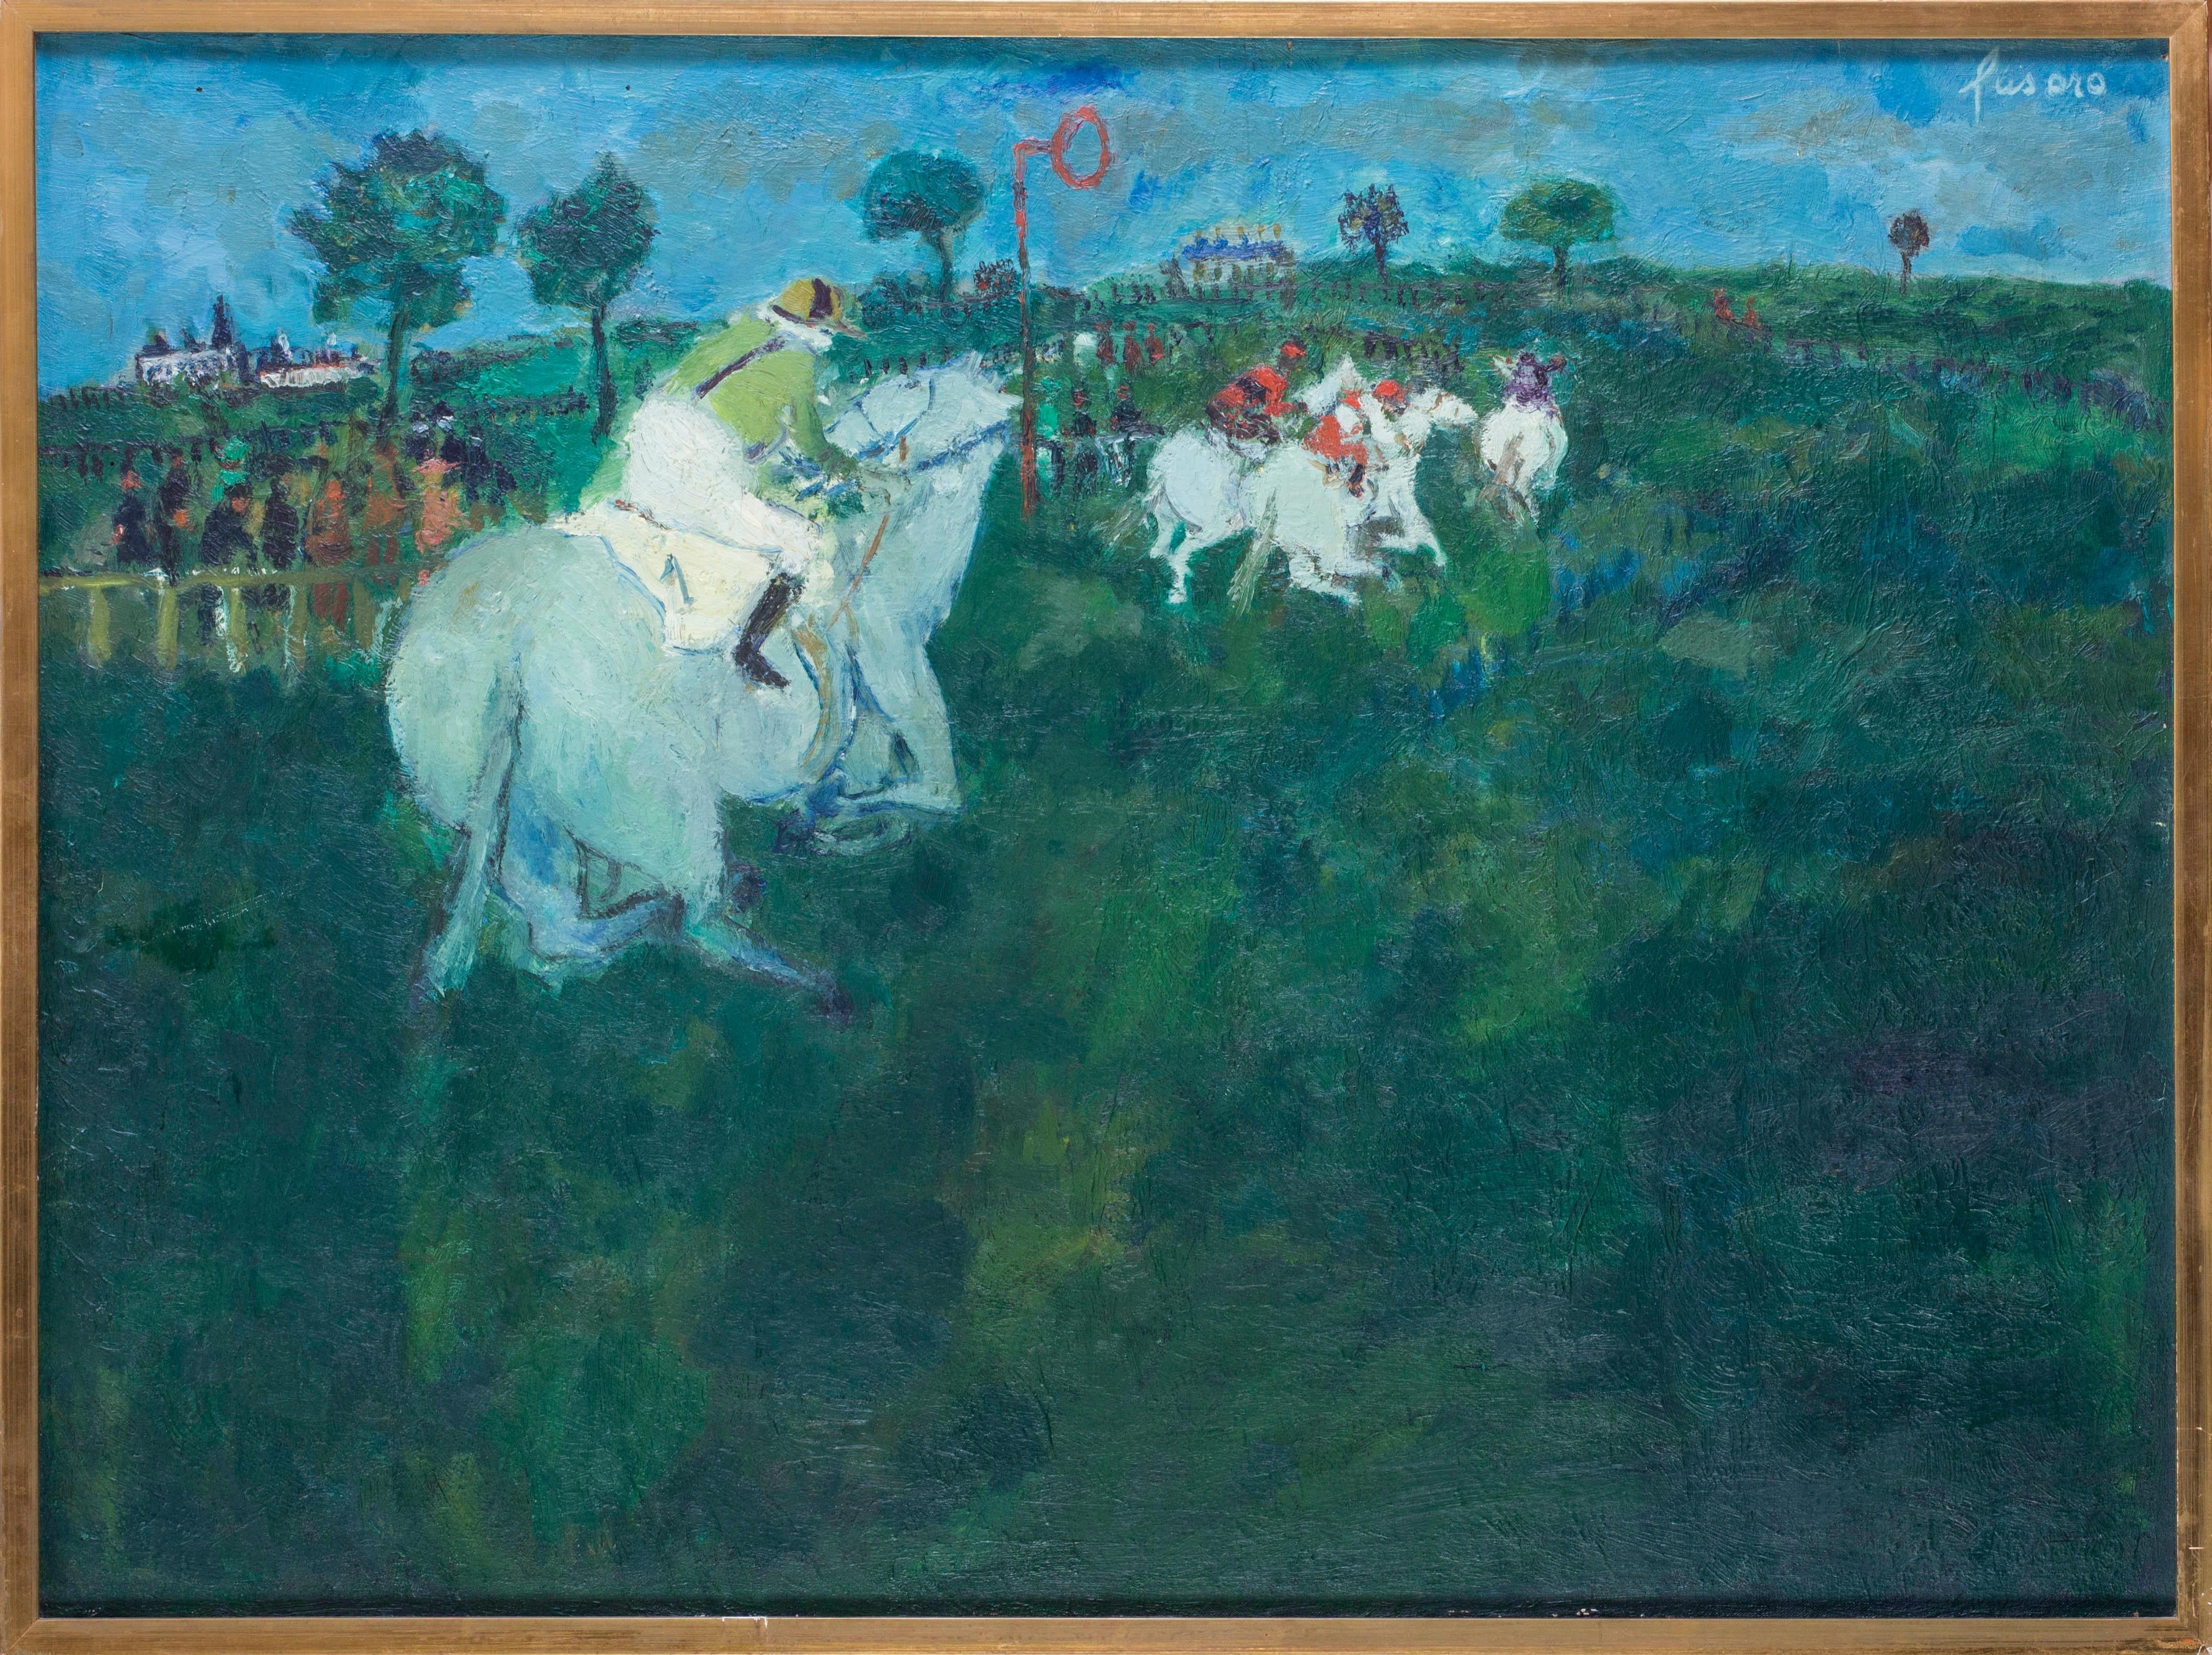 Horse racing, Jean Fusaro, French mid 20th Century, in vivid greens